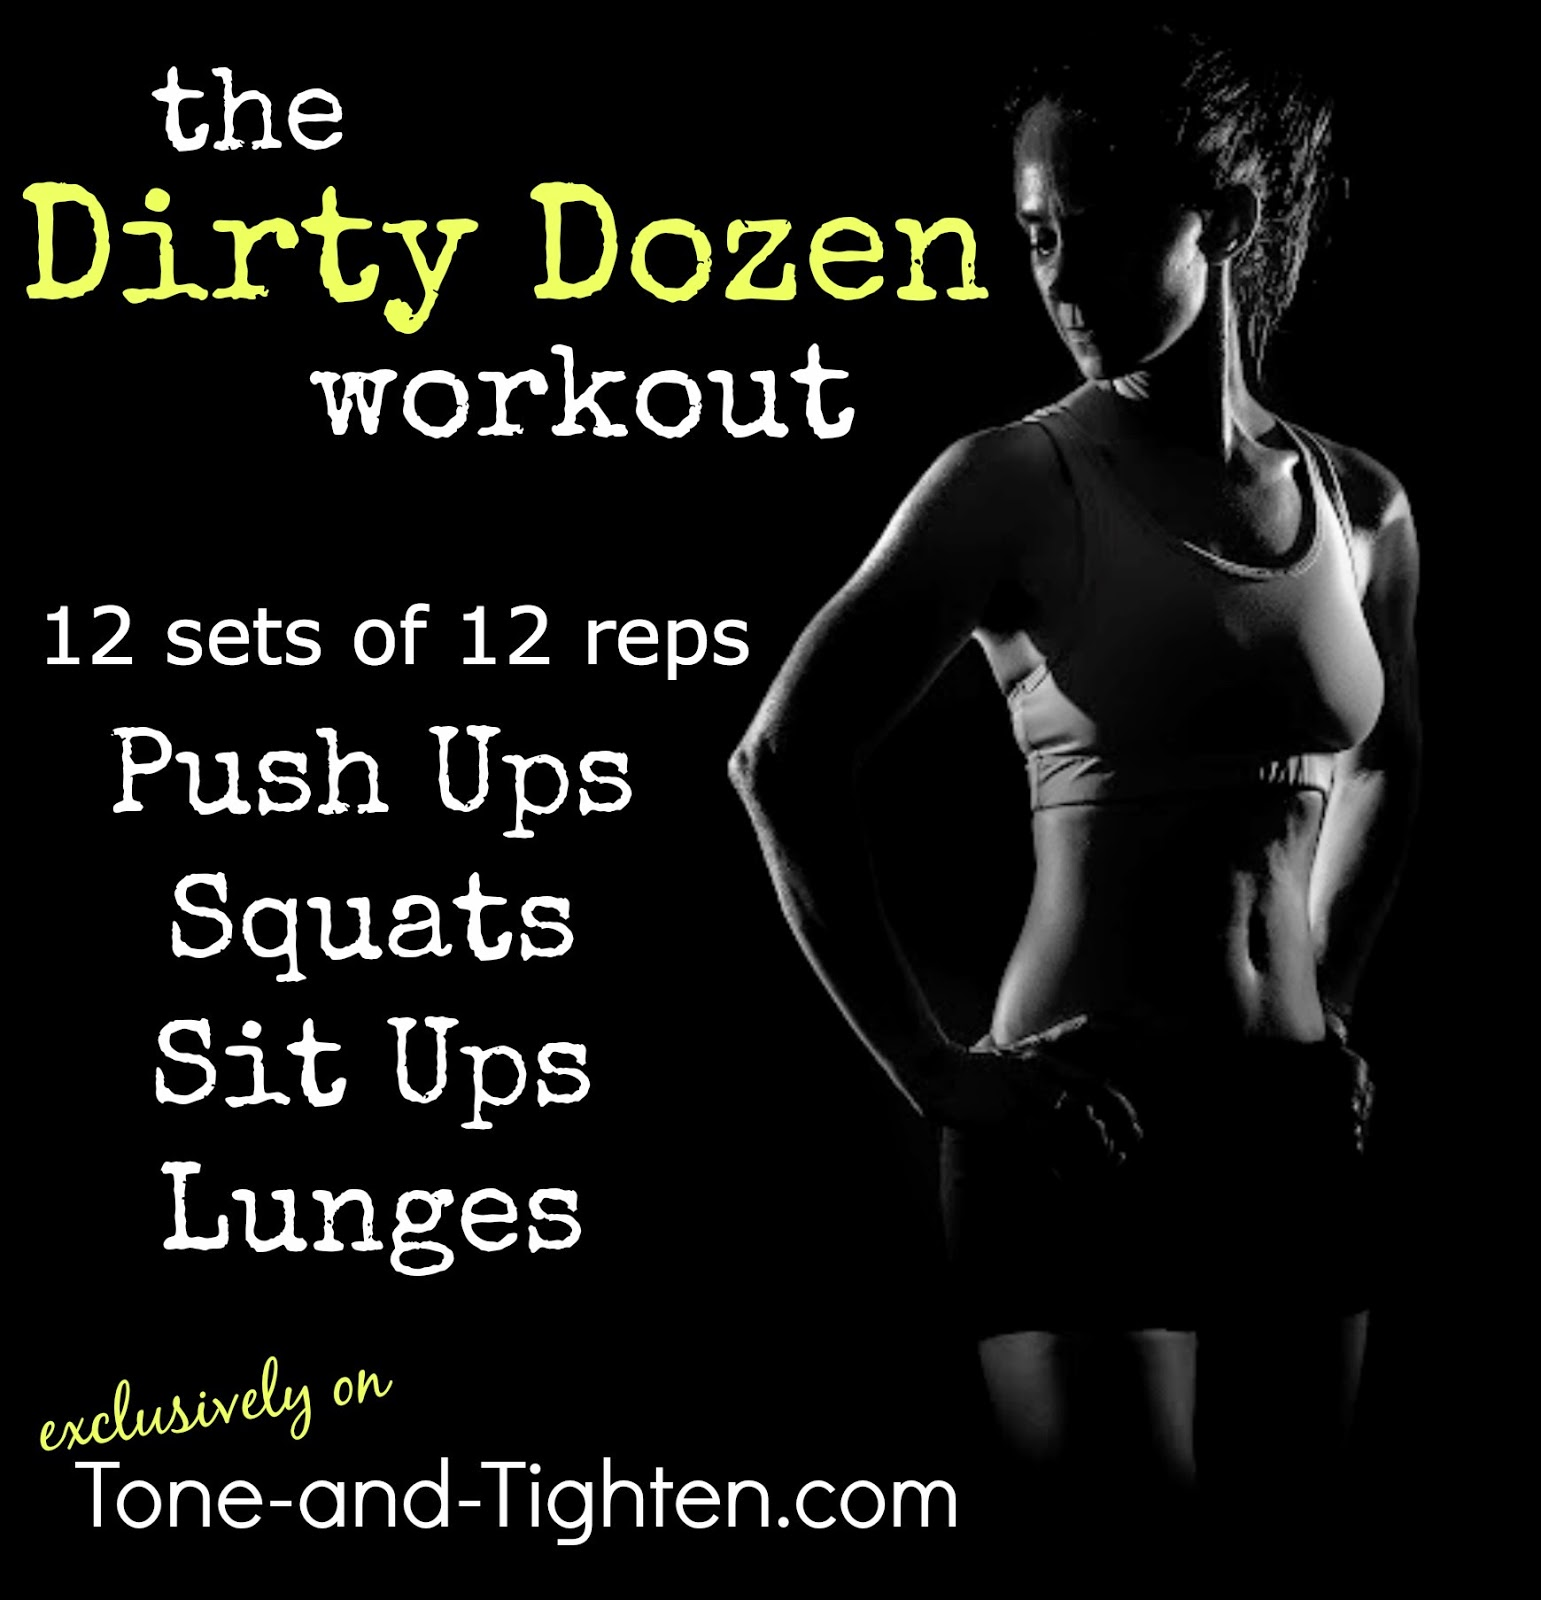 https://tone-and-tighten.com/2014/04/the-dirty-dozen-at-home-total-body-workout-from-tone-and-tighten.html